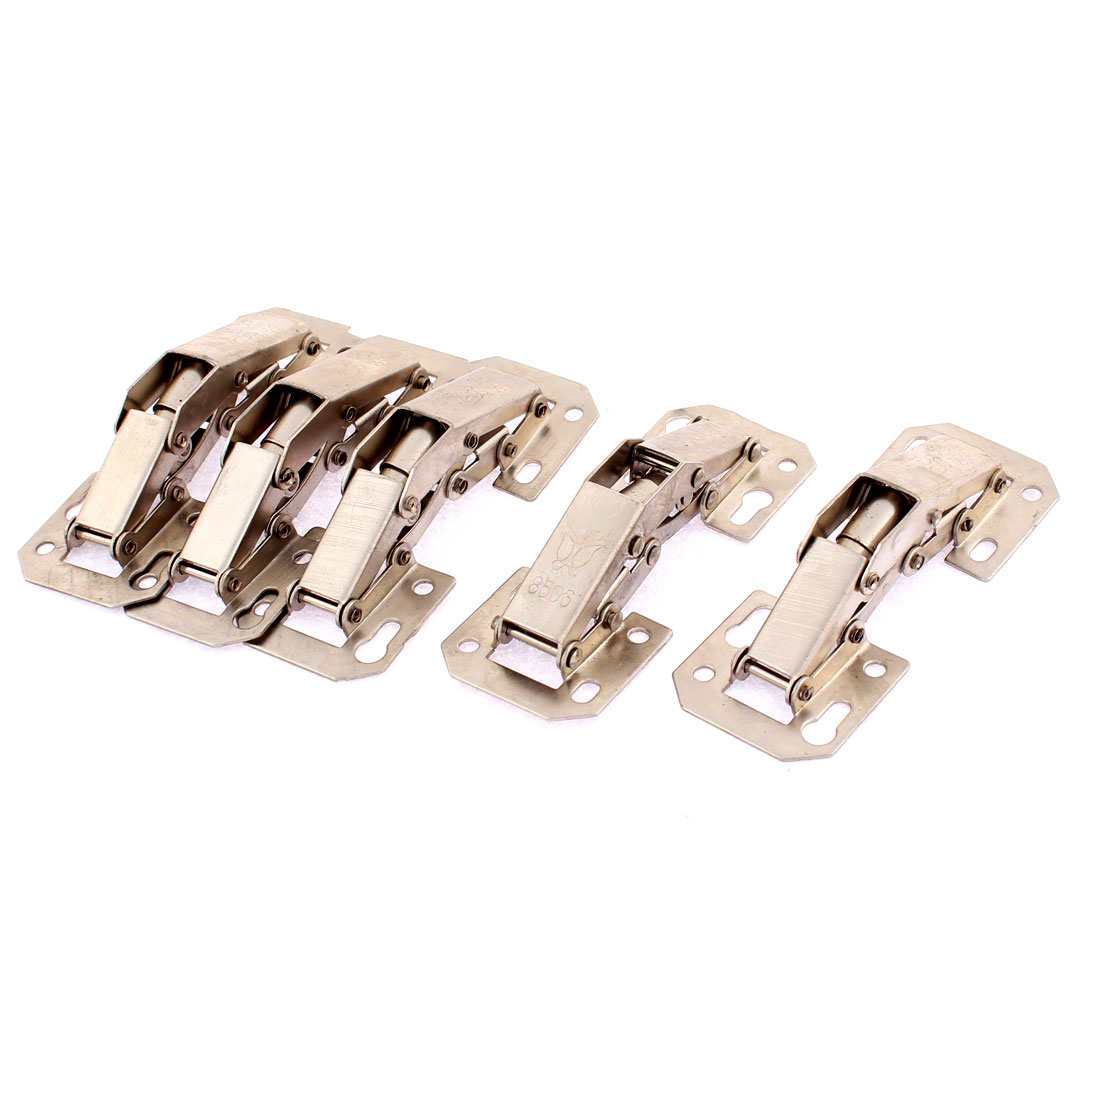 Cabinet 90 Degree Hydraulic Self Close Half Overlay Concealed Inset Hinge 5pcs